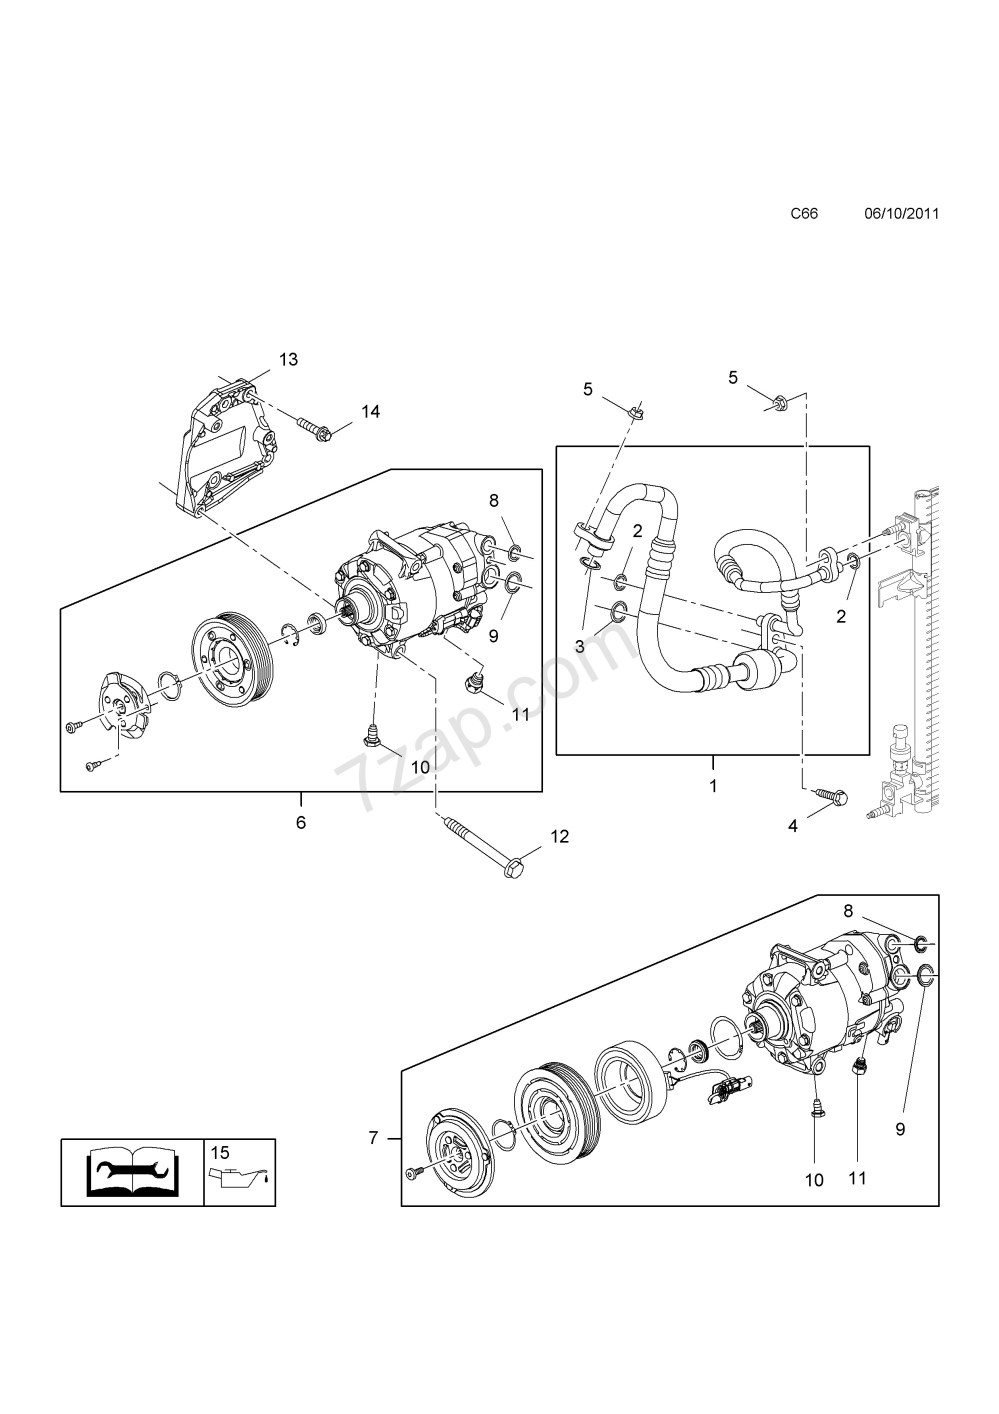 medium resolution of vauxhall engine diagrams vw jetta fuse box diagram opel zafira engine diagram vauxhall zafira b engine diagram